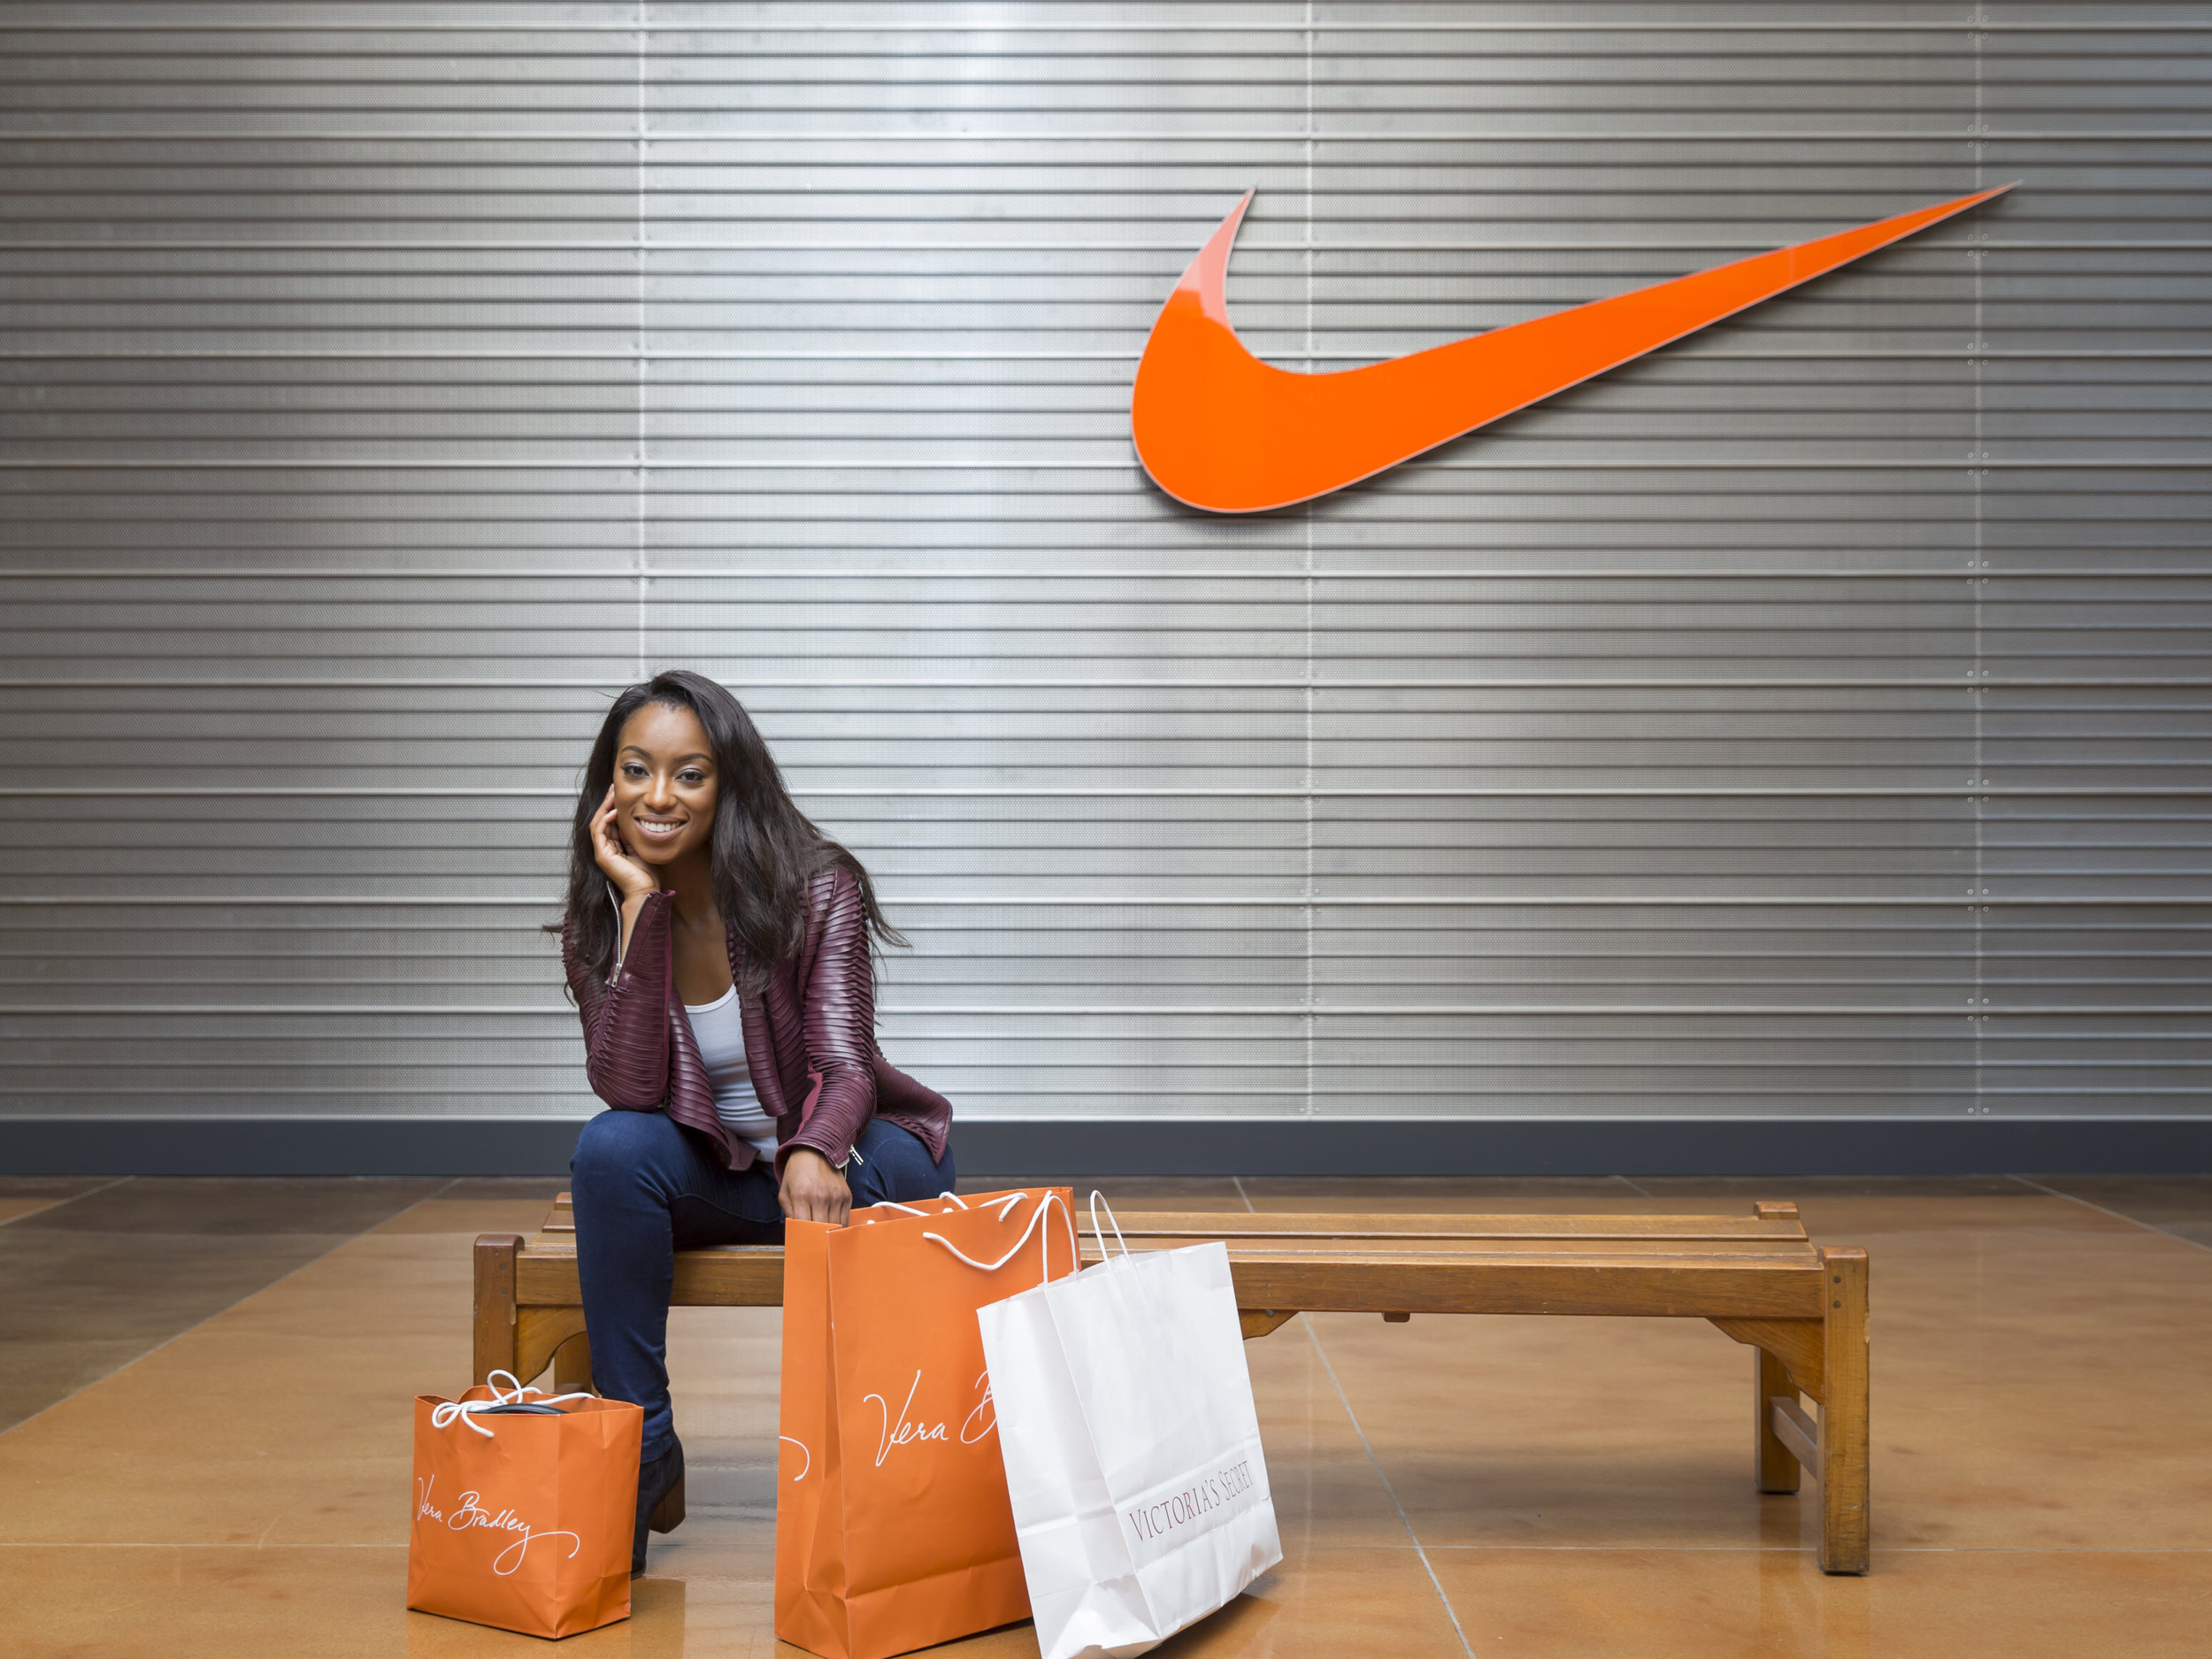 LIFESTYLE GOAL: I SEE MYSELF ON NIKE WOMEN'S ADS -